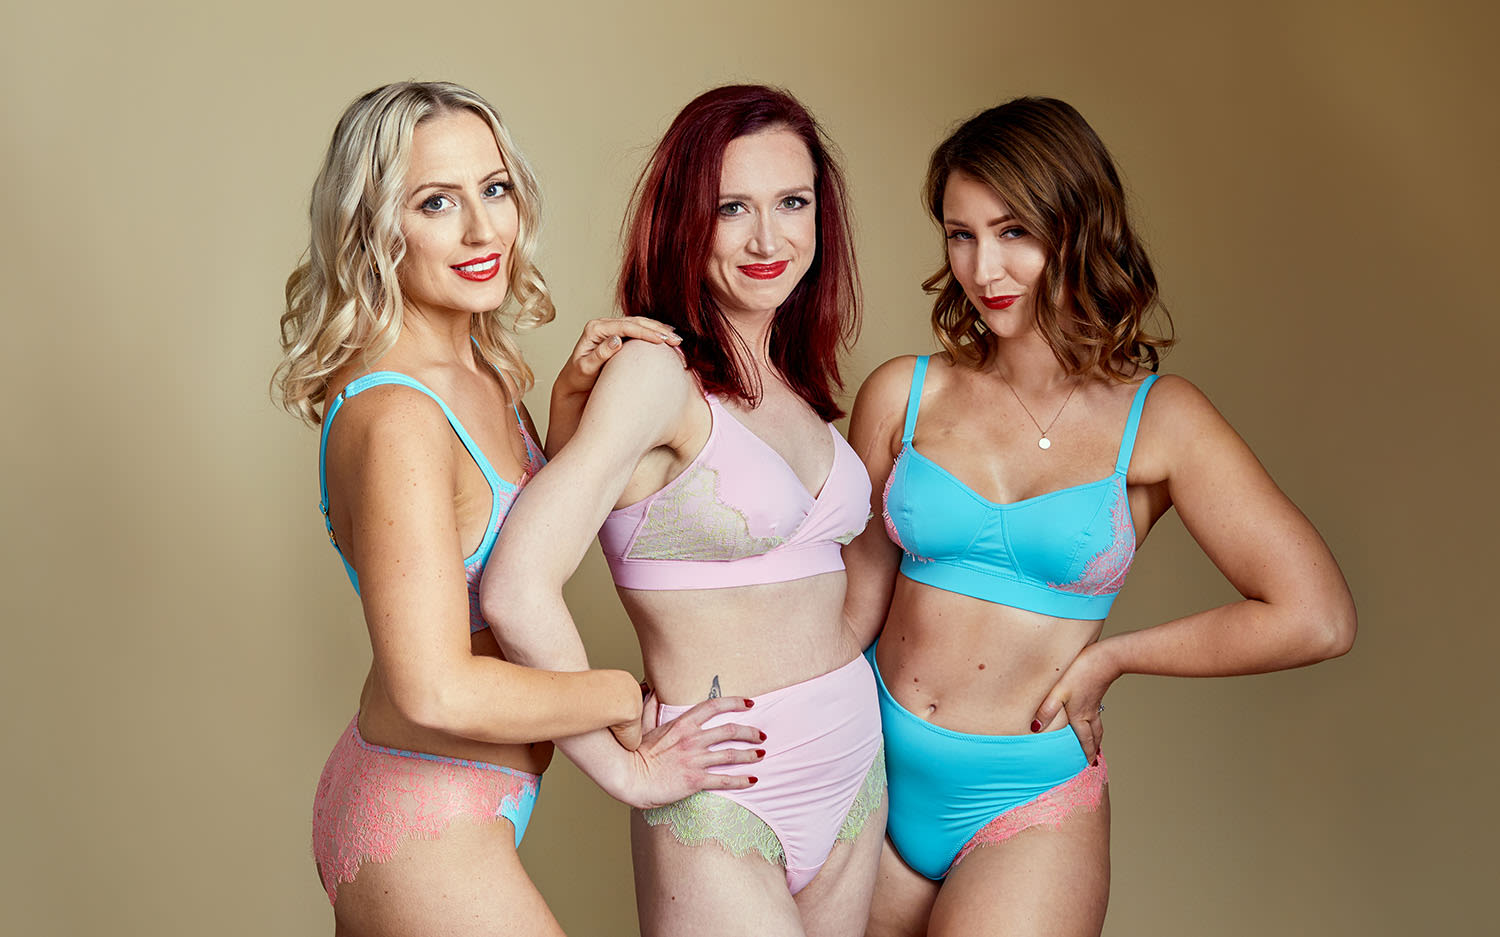 Three women posing in Valiant Lingerie